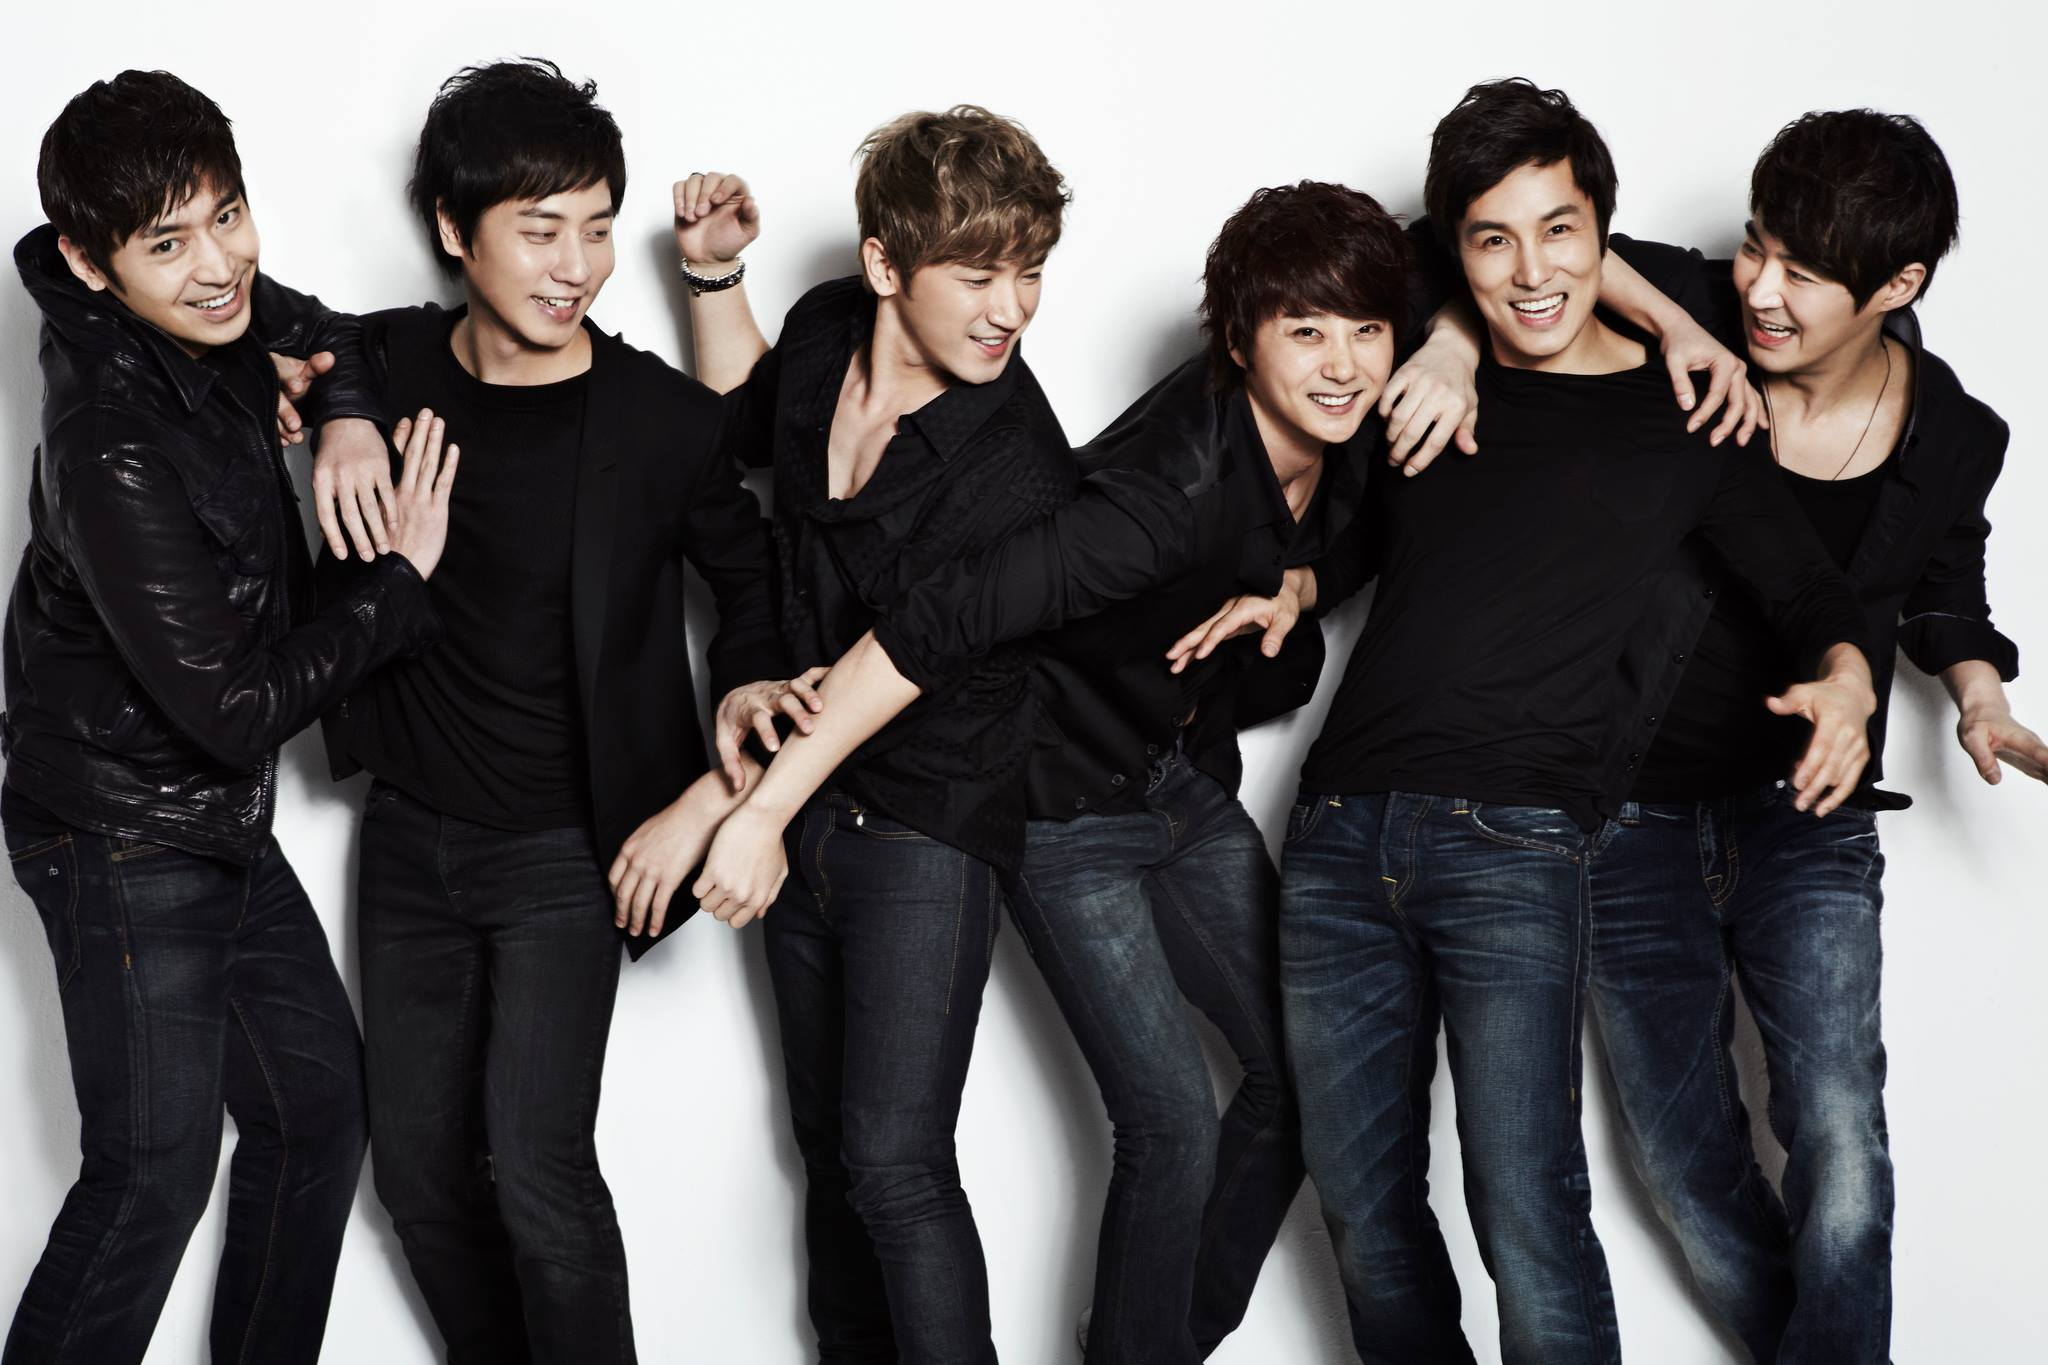 Best Of The Best: The Top 10 Shinhwa Music Videos